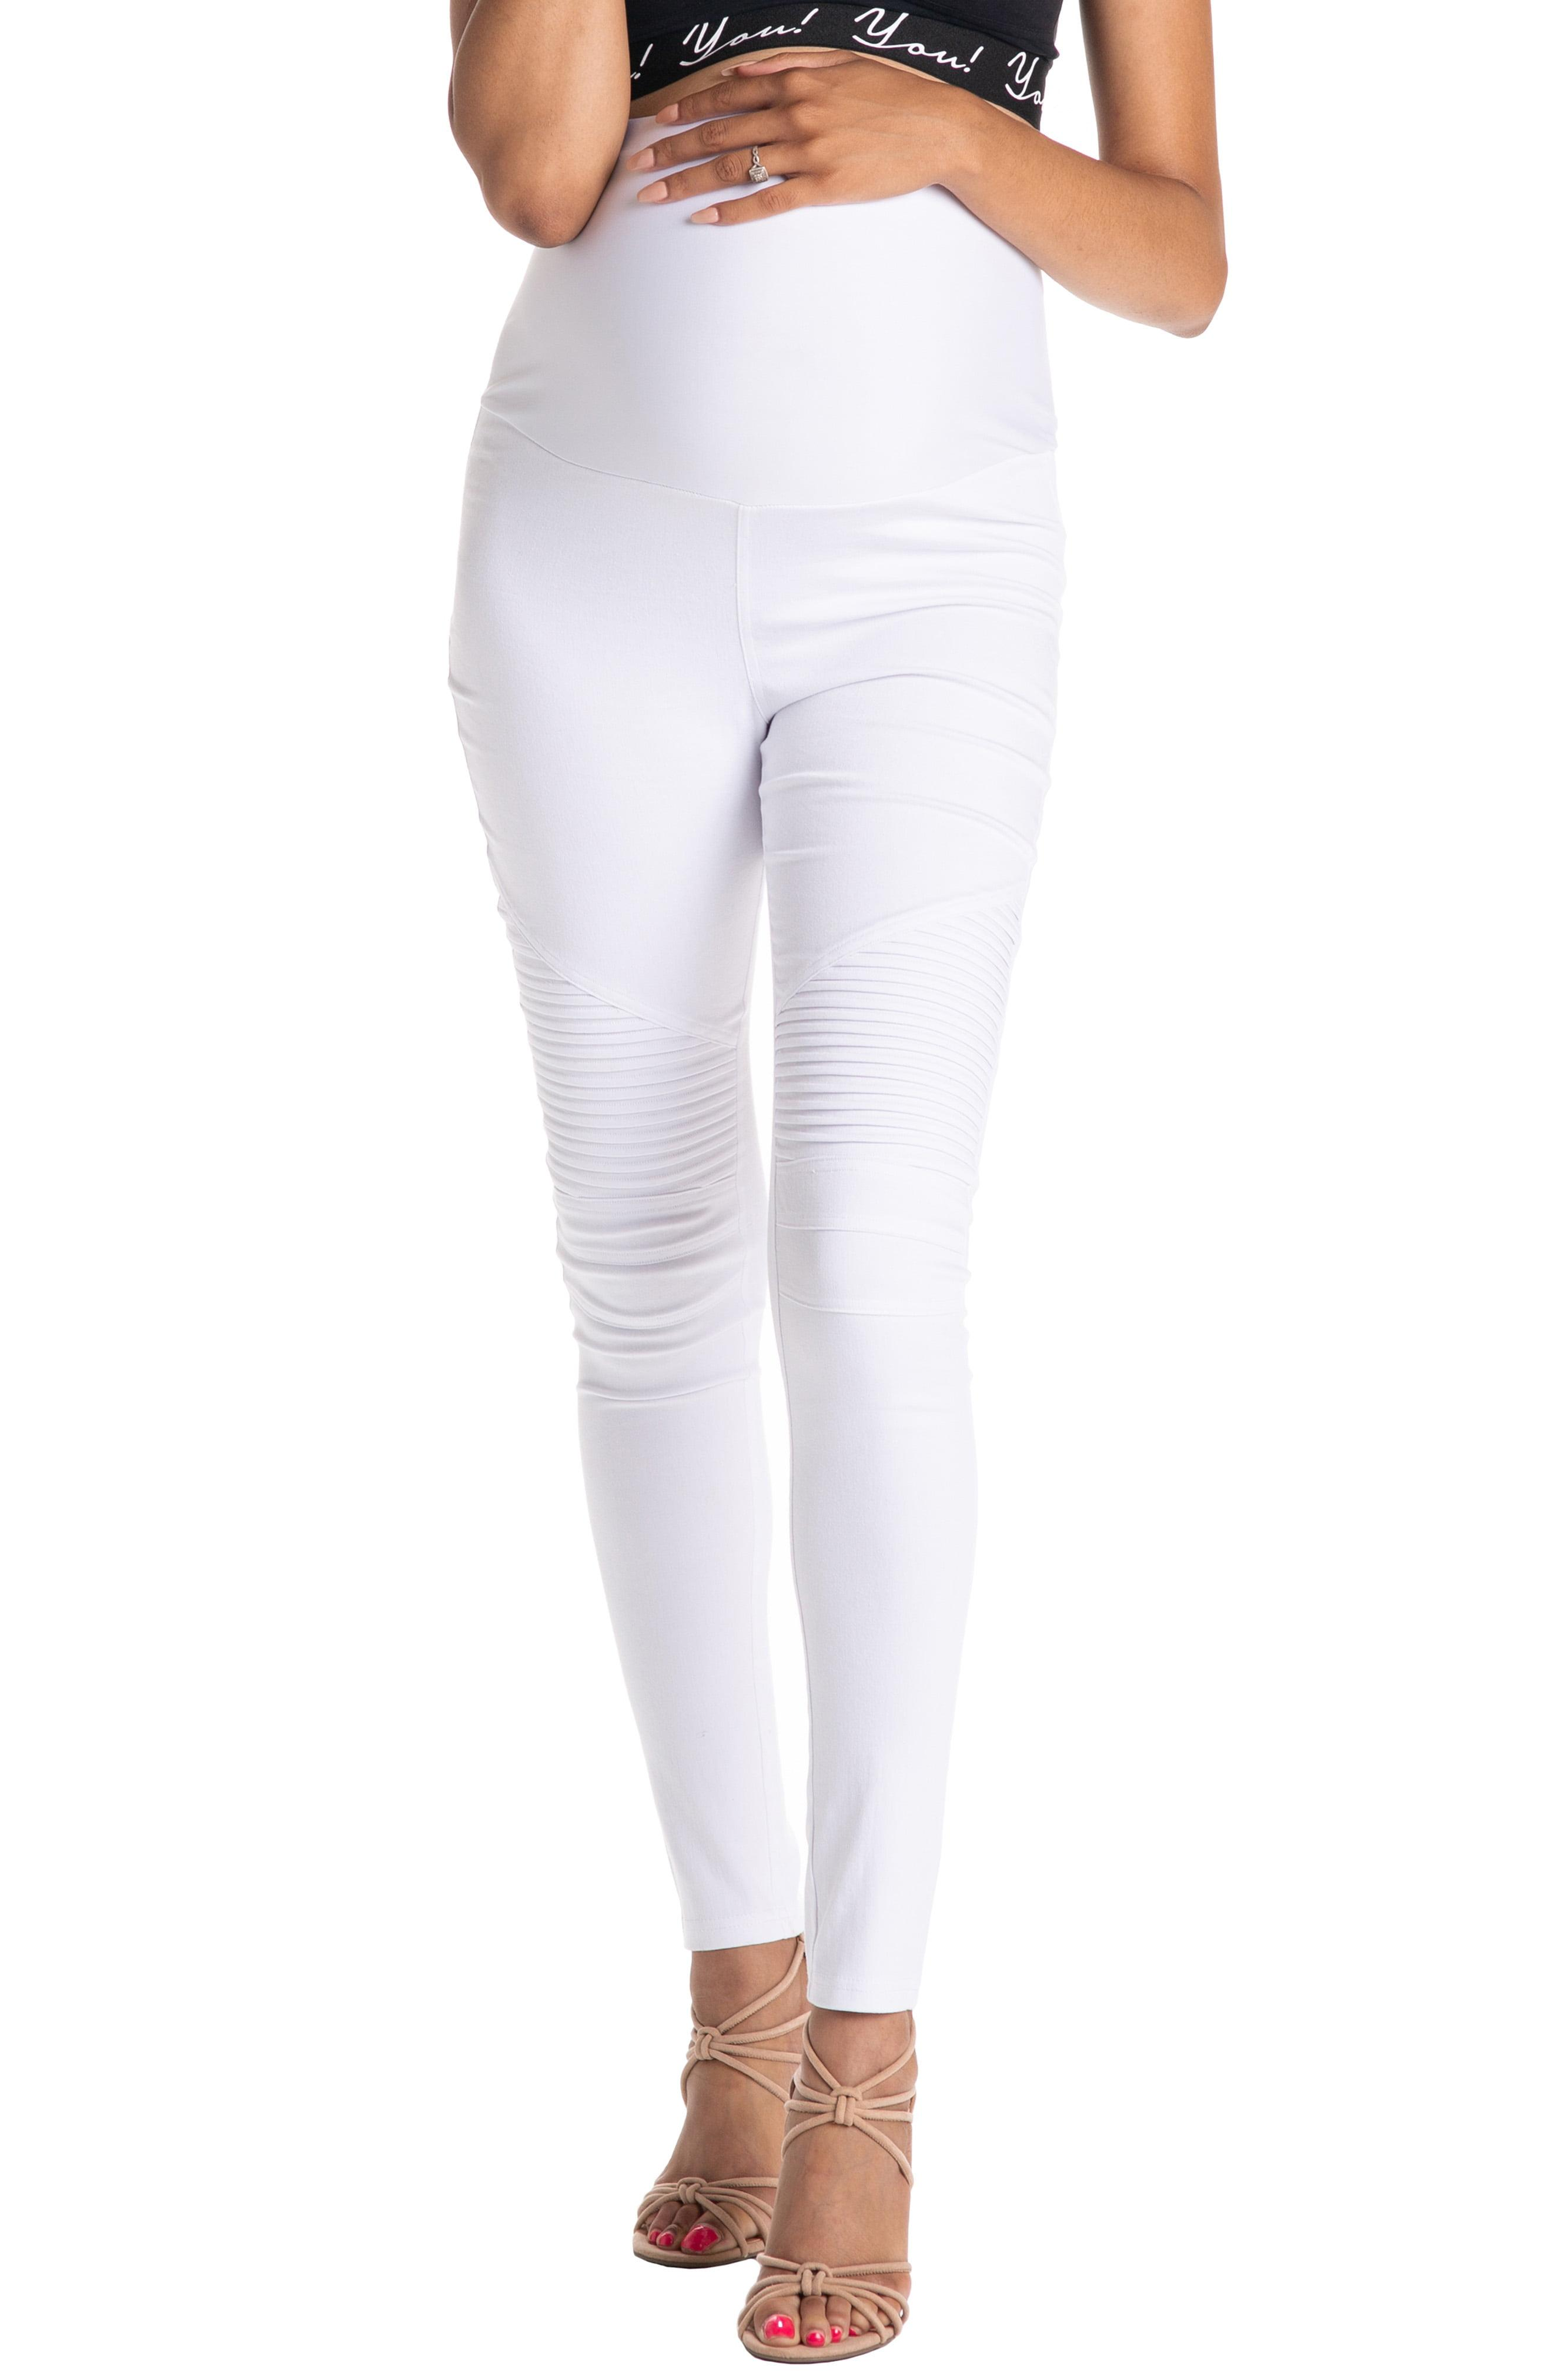 4a5ee48c1b206 Lyst - PREGGO LEGGINGS Moto Maternity Leggings in White